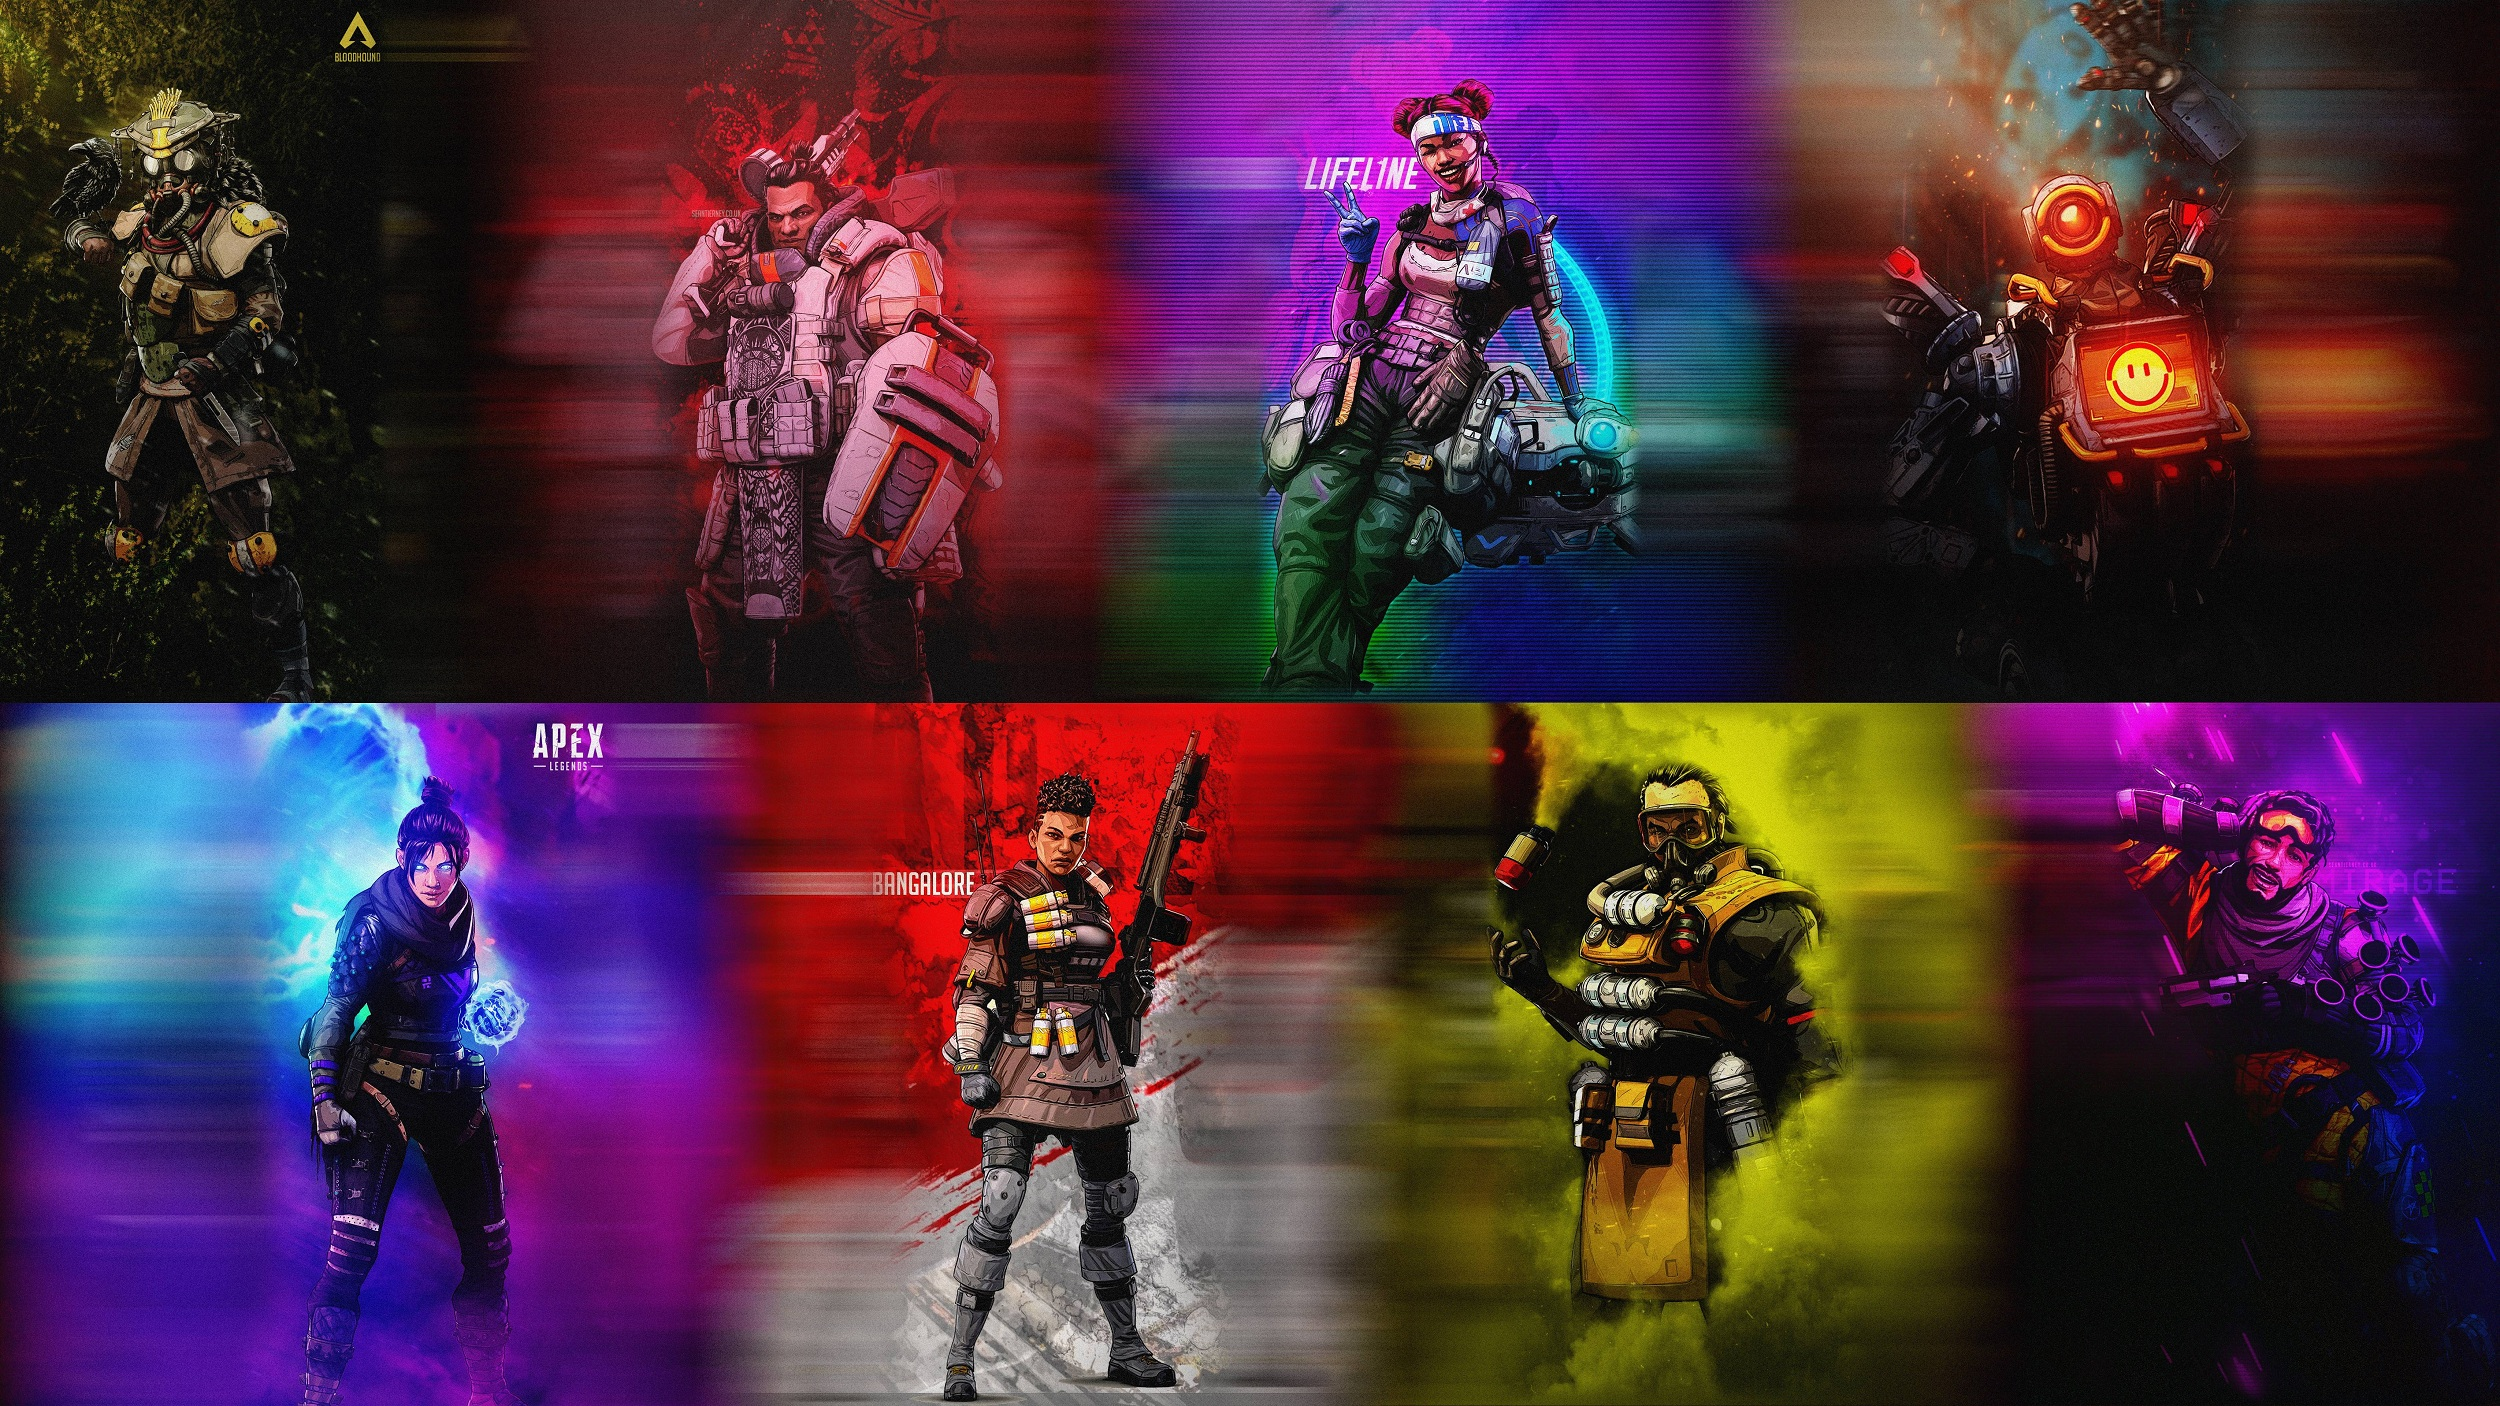 apex backgrounds